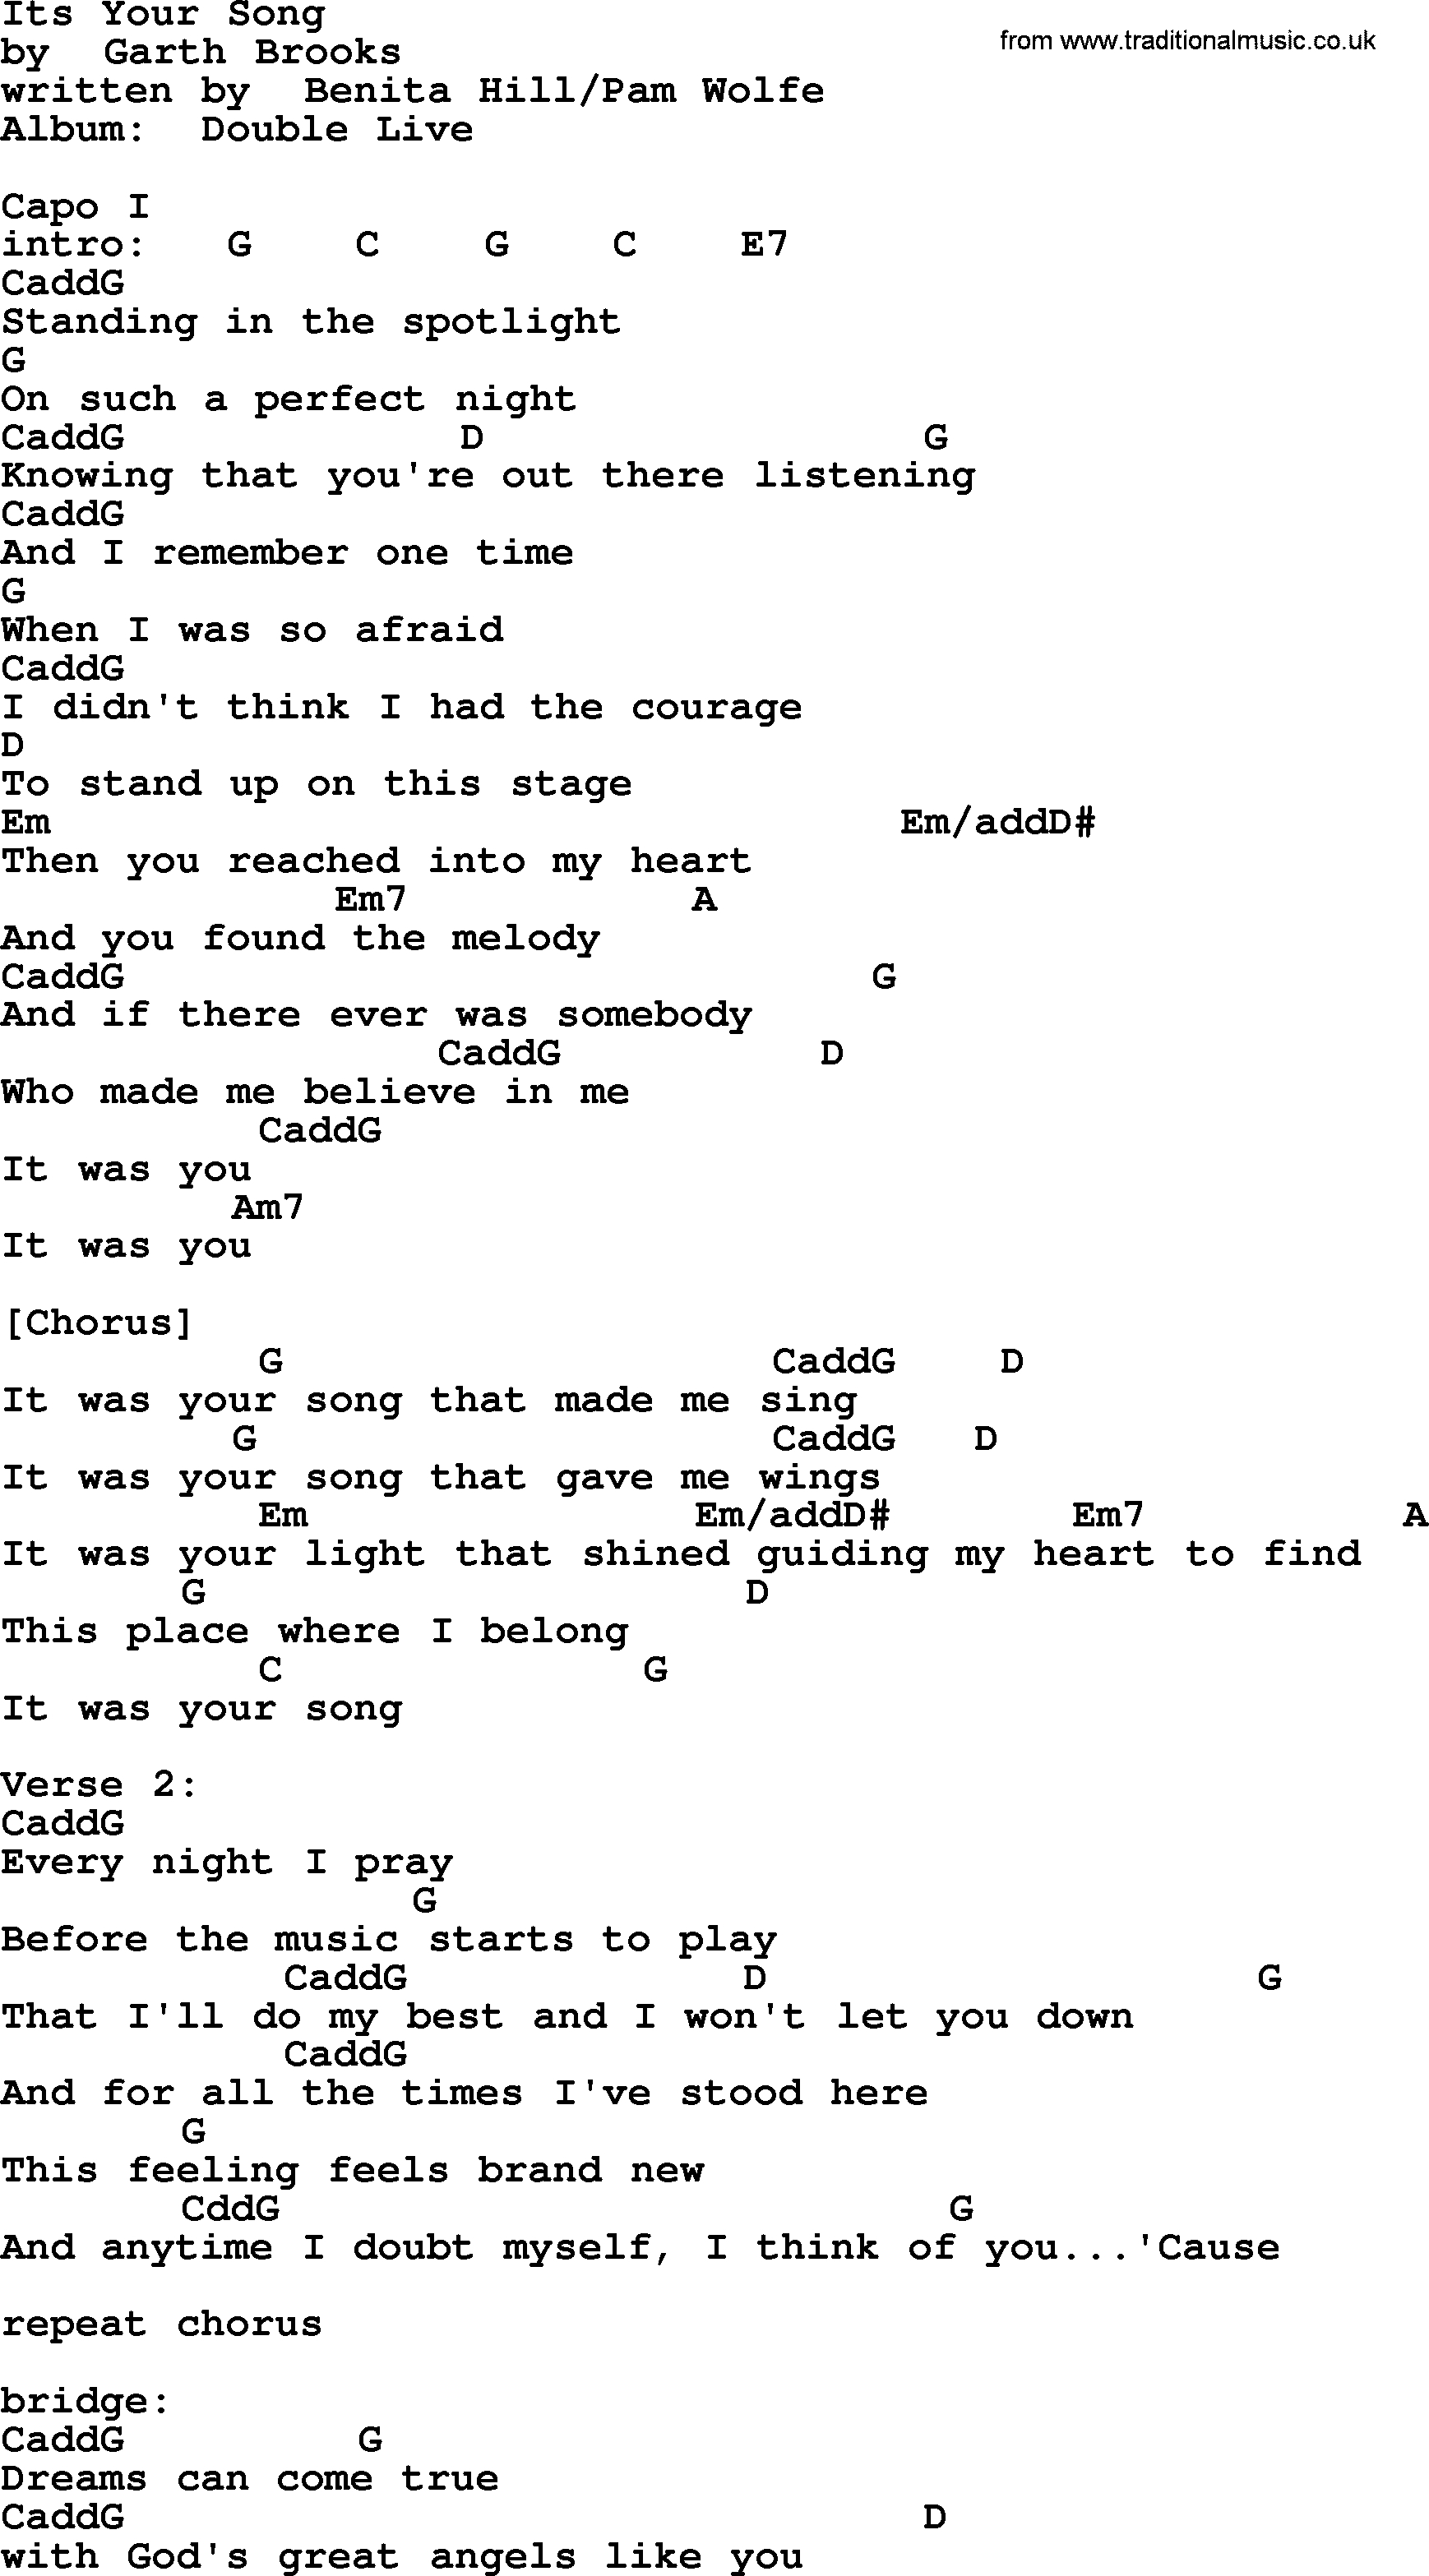 Your Song Chords Its Your Song Garth Brooks Lyrics And Chords